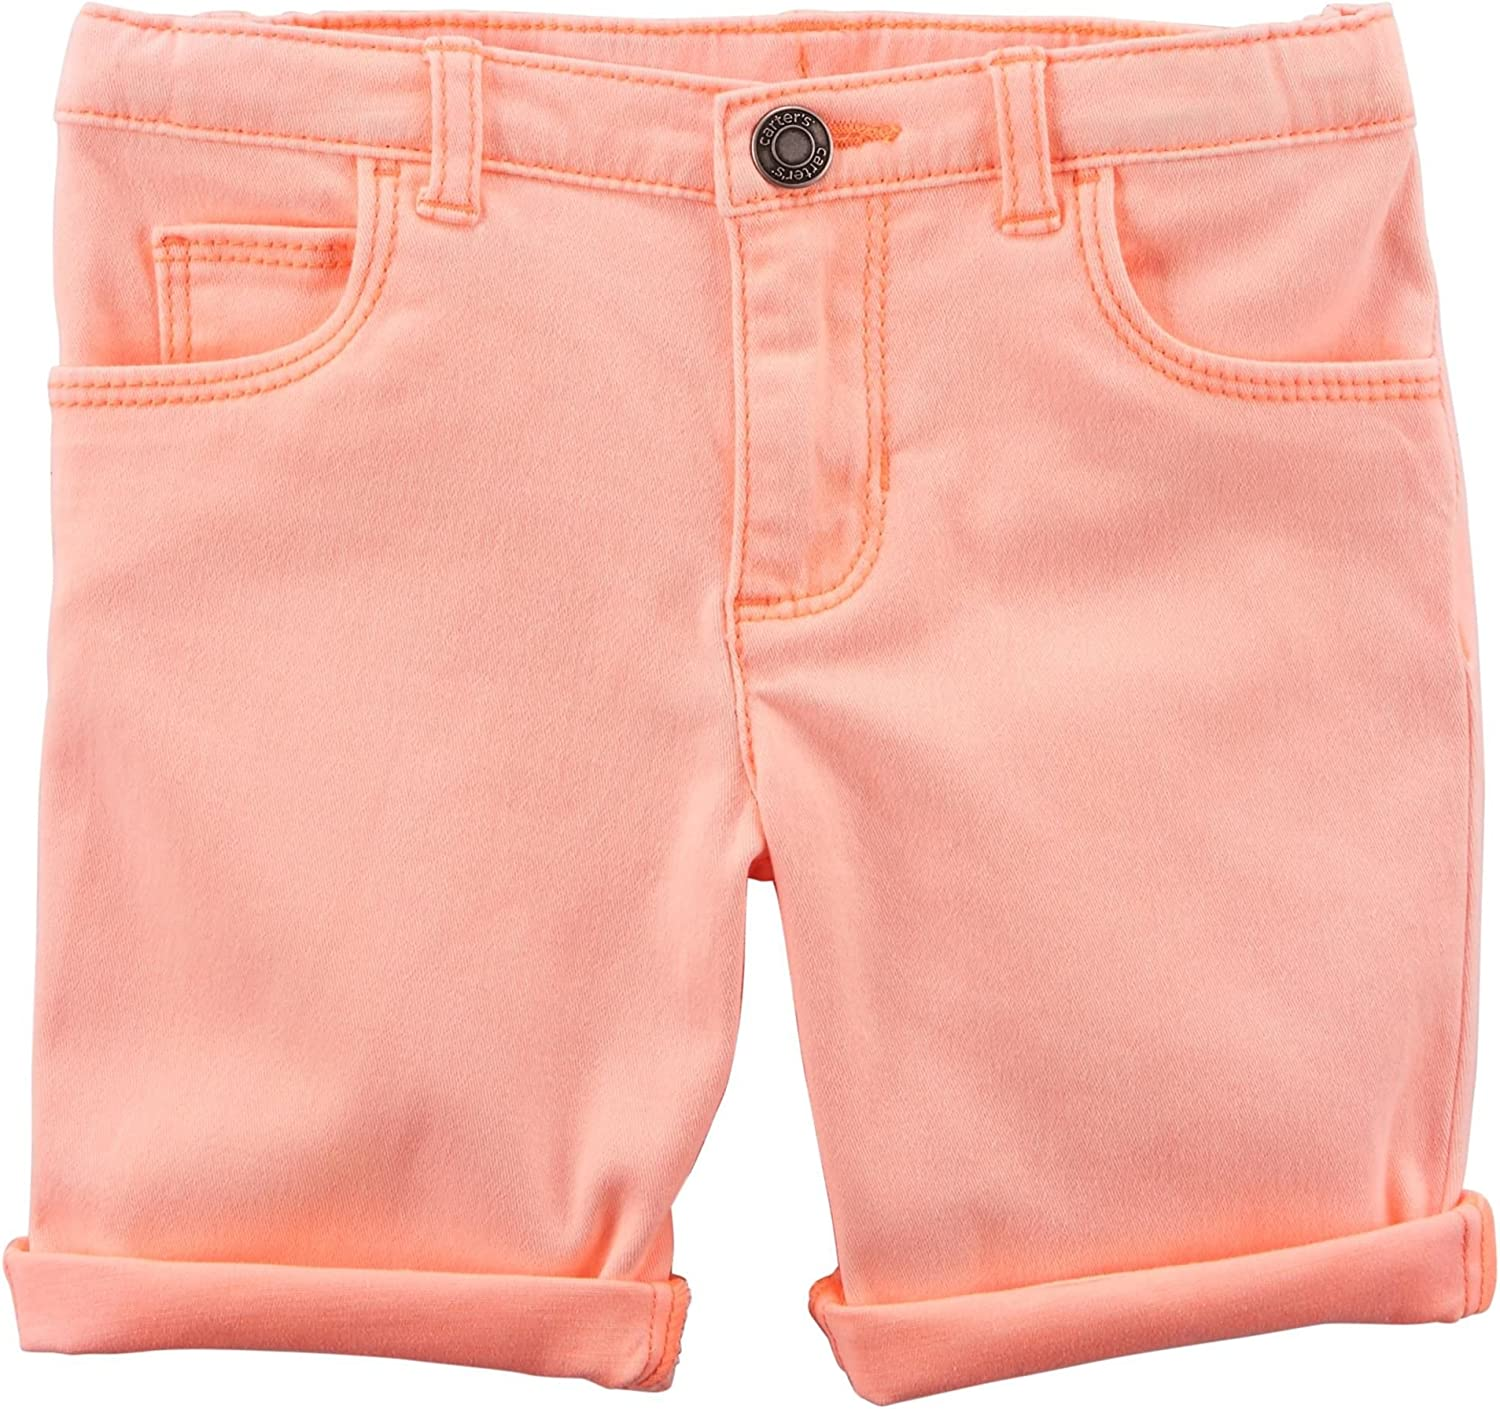 Carter's Girls' Albuquerque Mall Stretch Shorts Skimmer New arrival